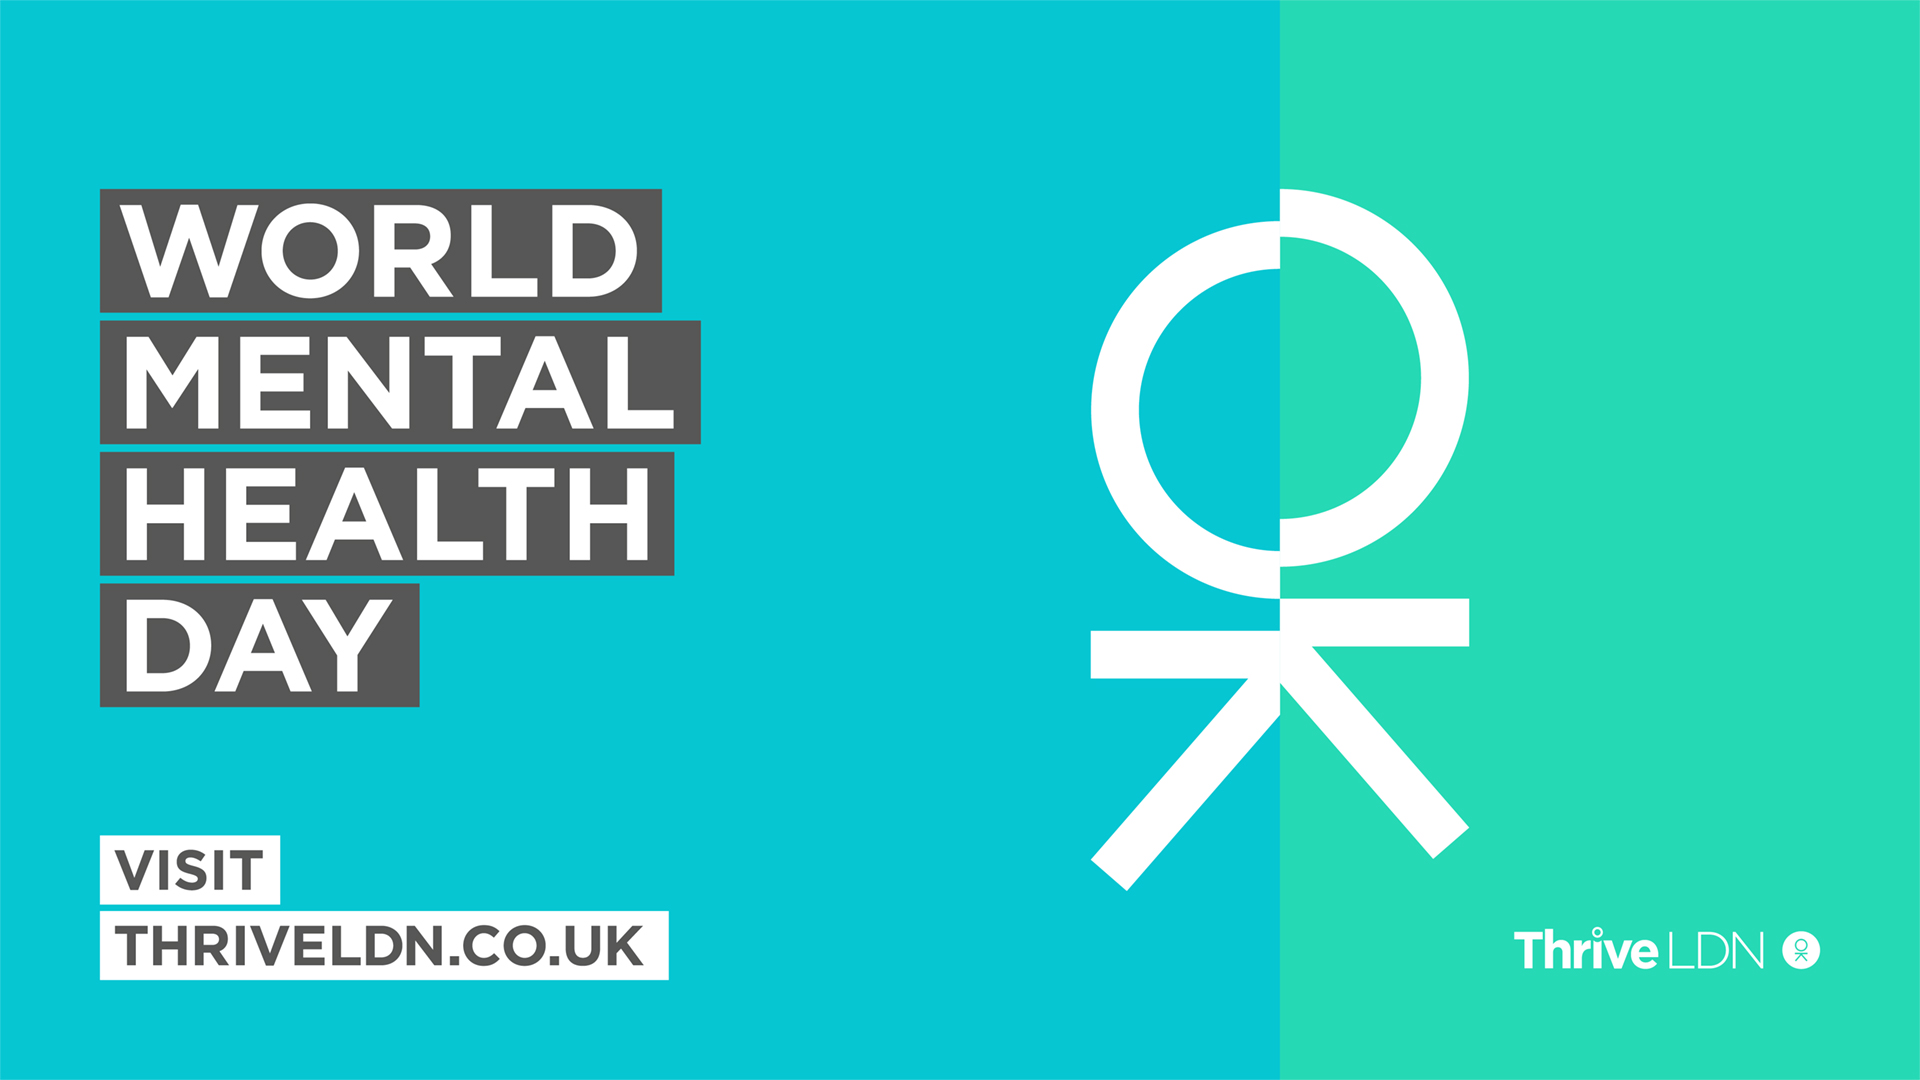 World Mental Health Day Festival 2020 Thrive Ldn Thrive Ldn